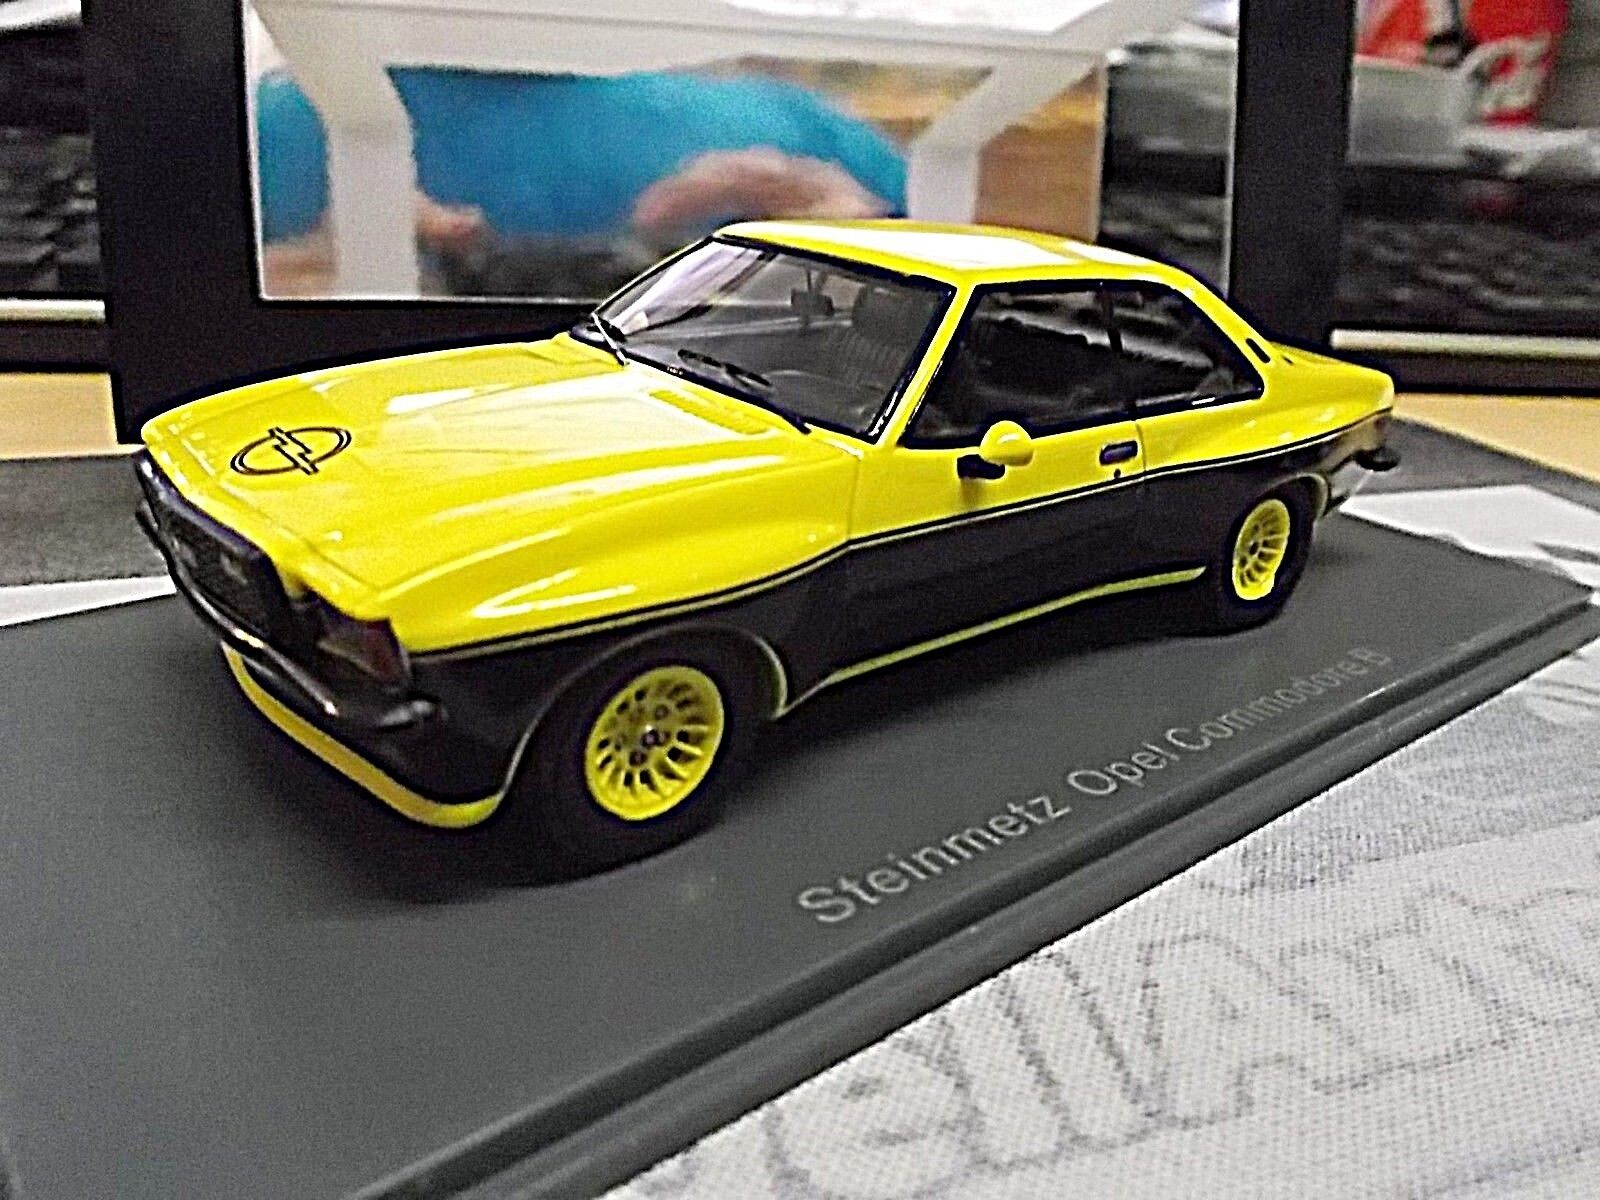 Opel Coupe cantero Commodore B GS e deporte amarillo negro rar resin neo 1 43